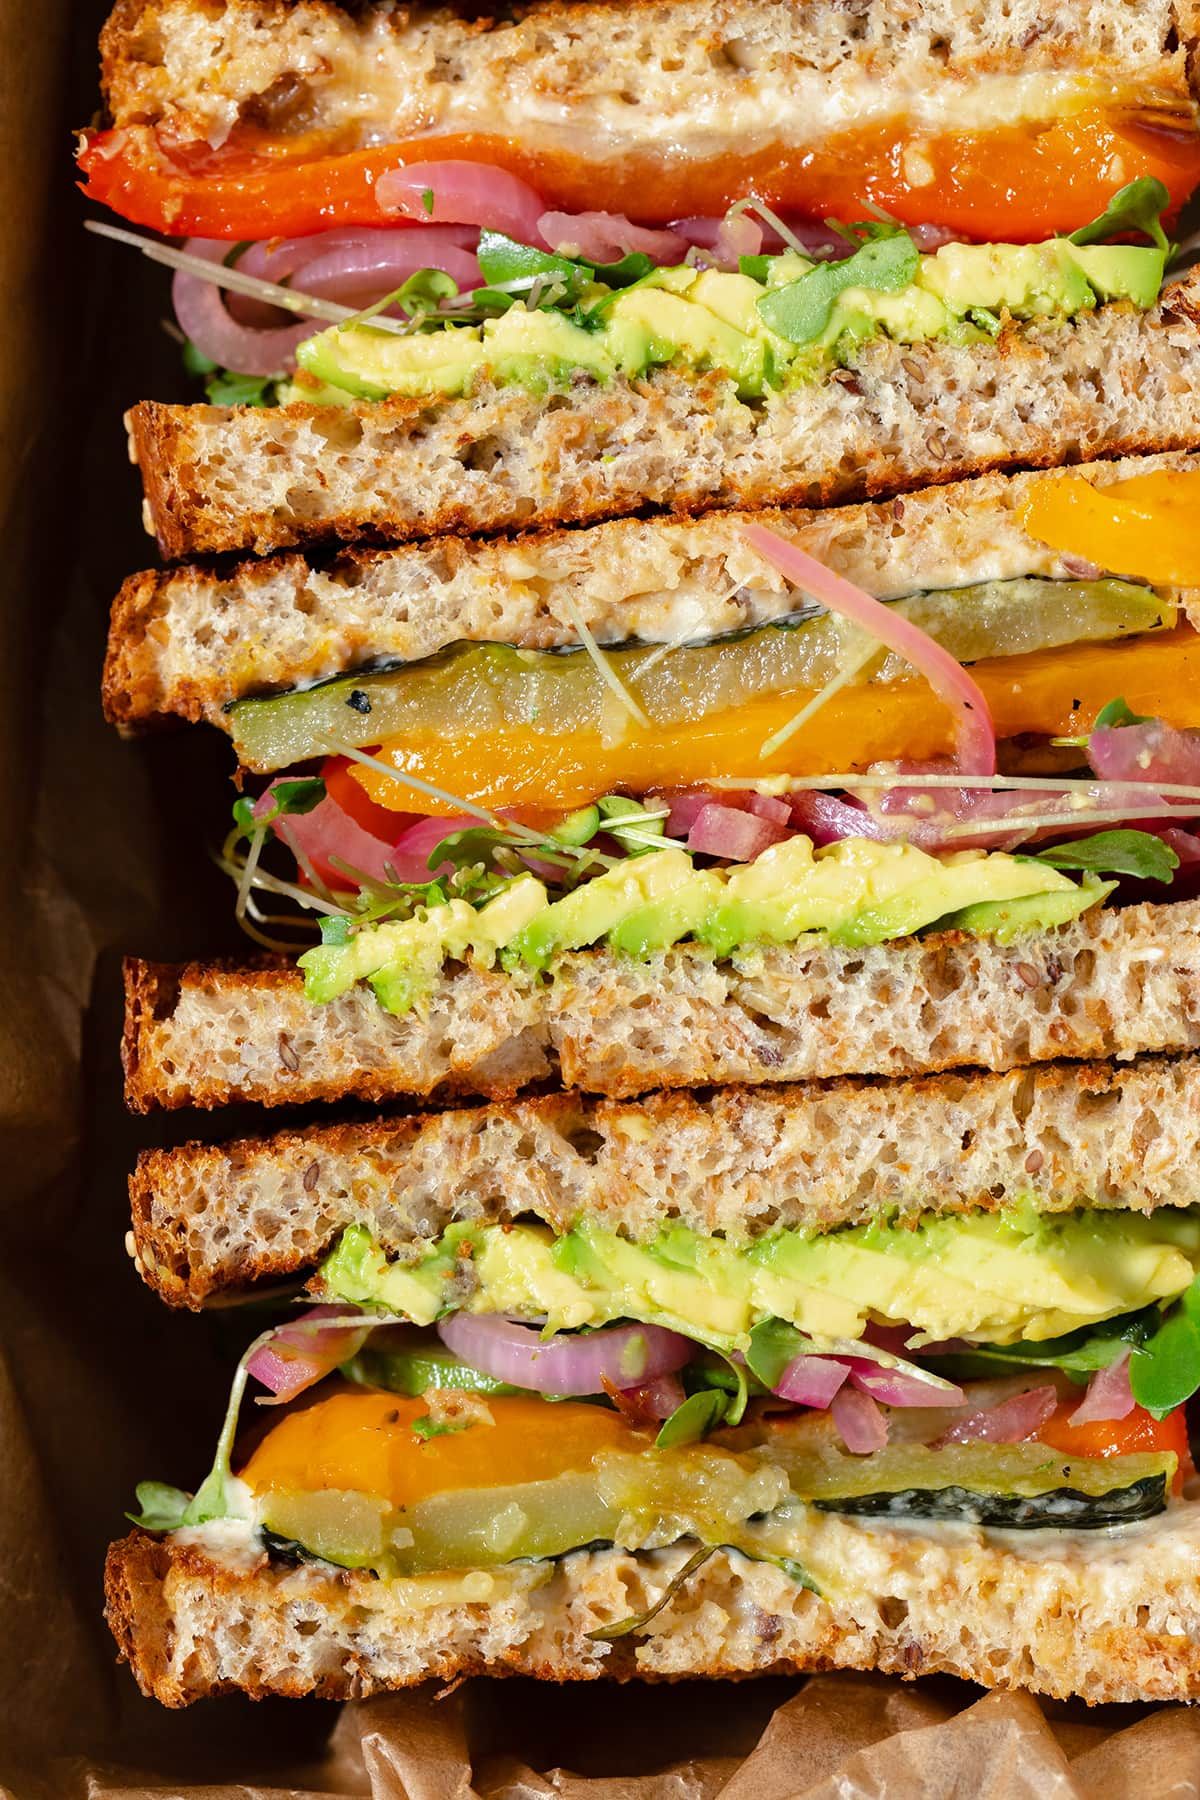 A close up of sandwiches ready to eat. Cut and laid out cut side up.